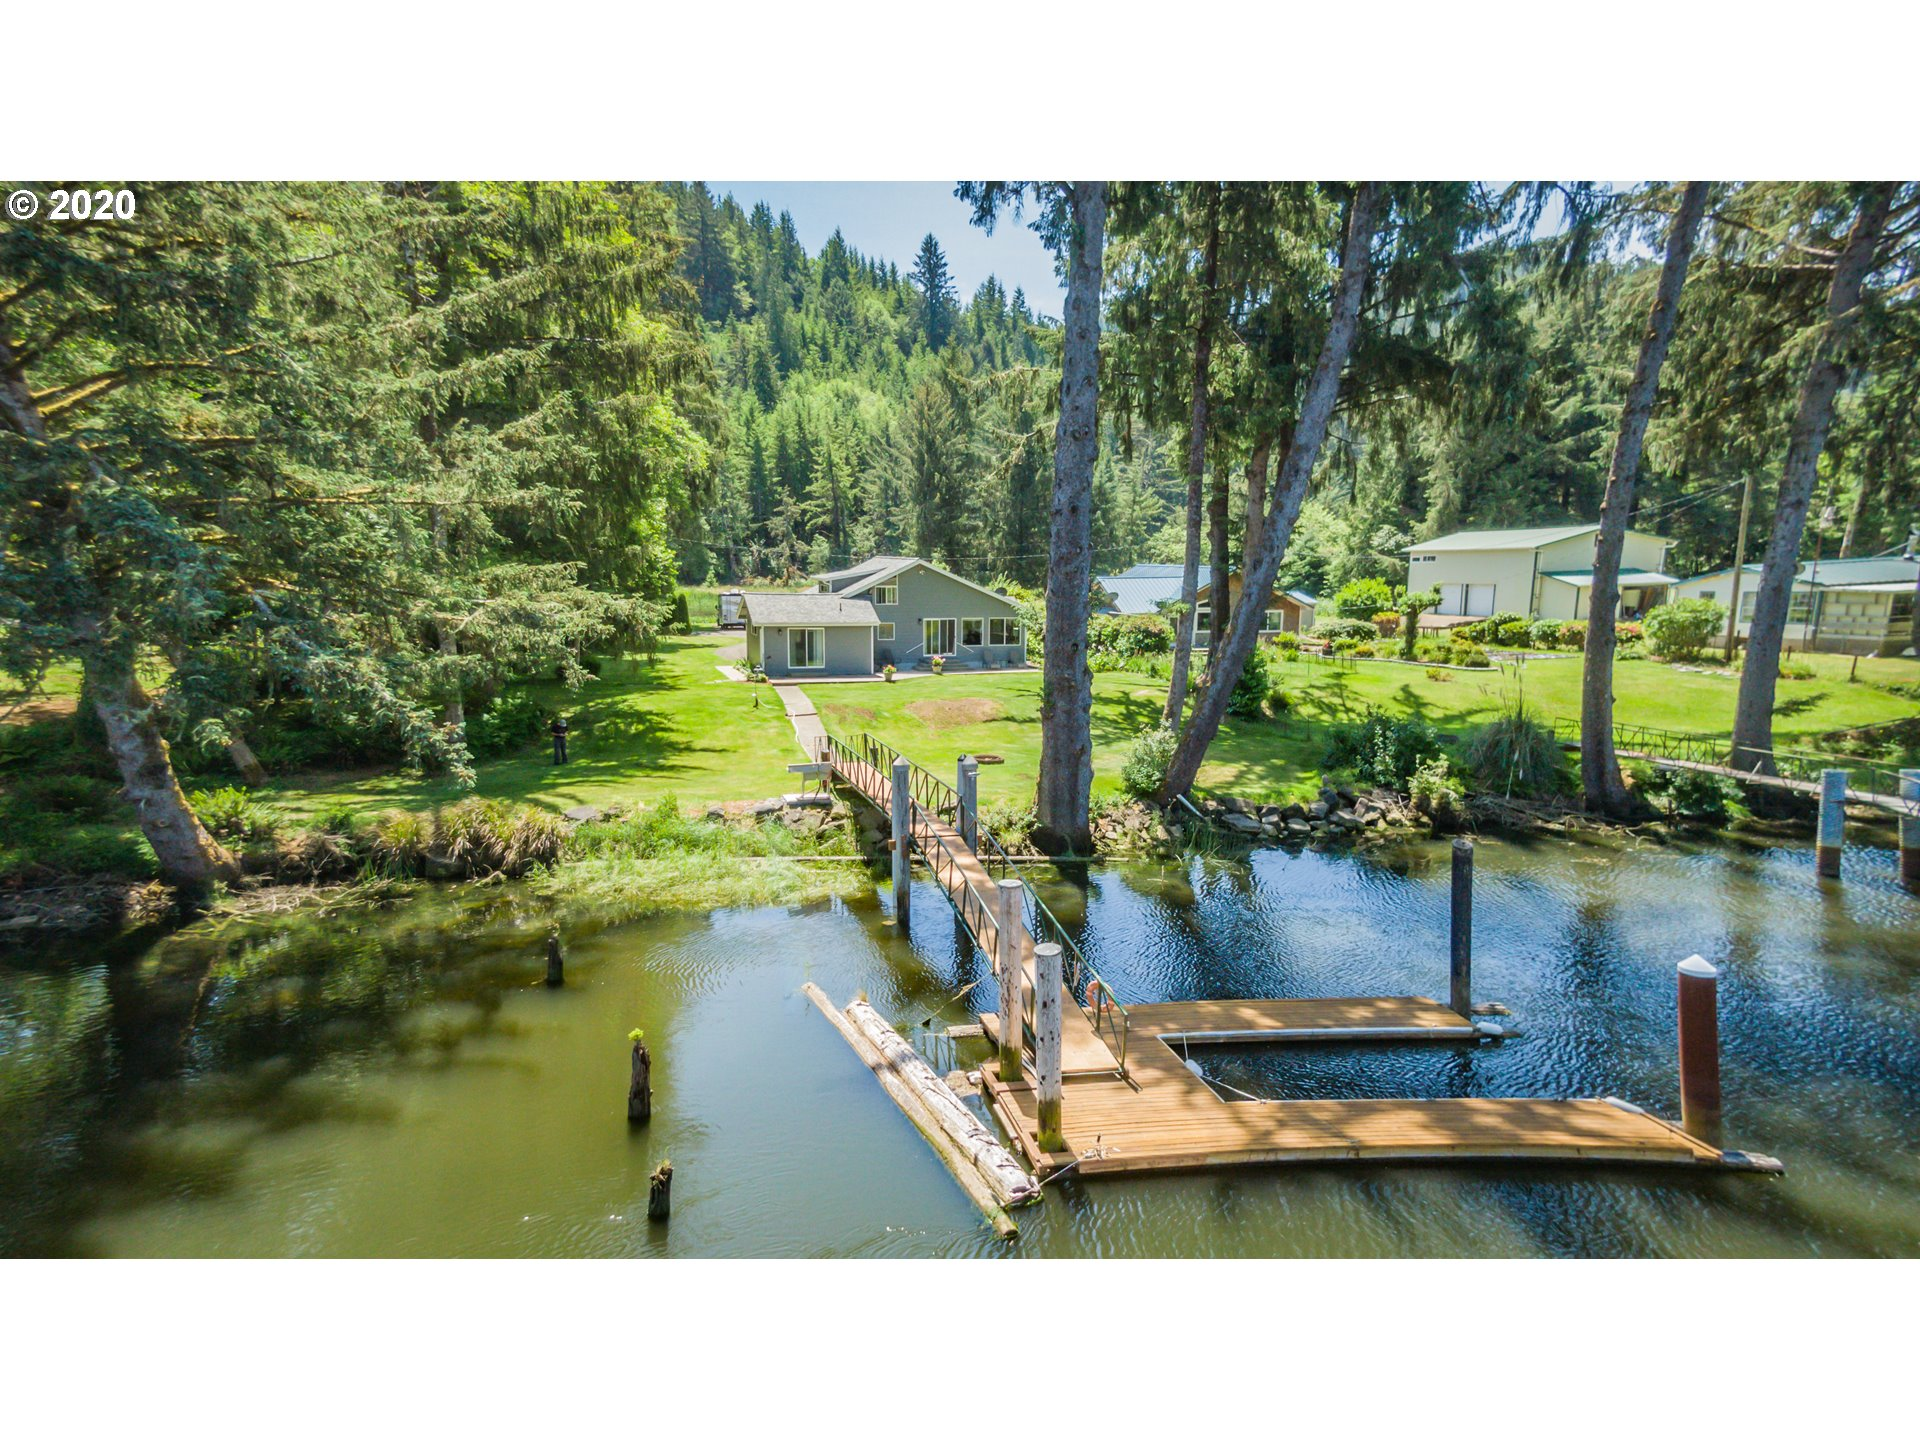 8399 DUNCAN ISLAND RD, Mapleton OR 97453